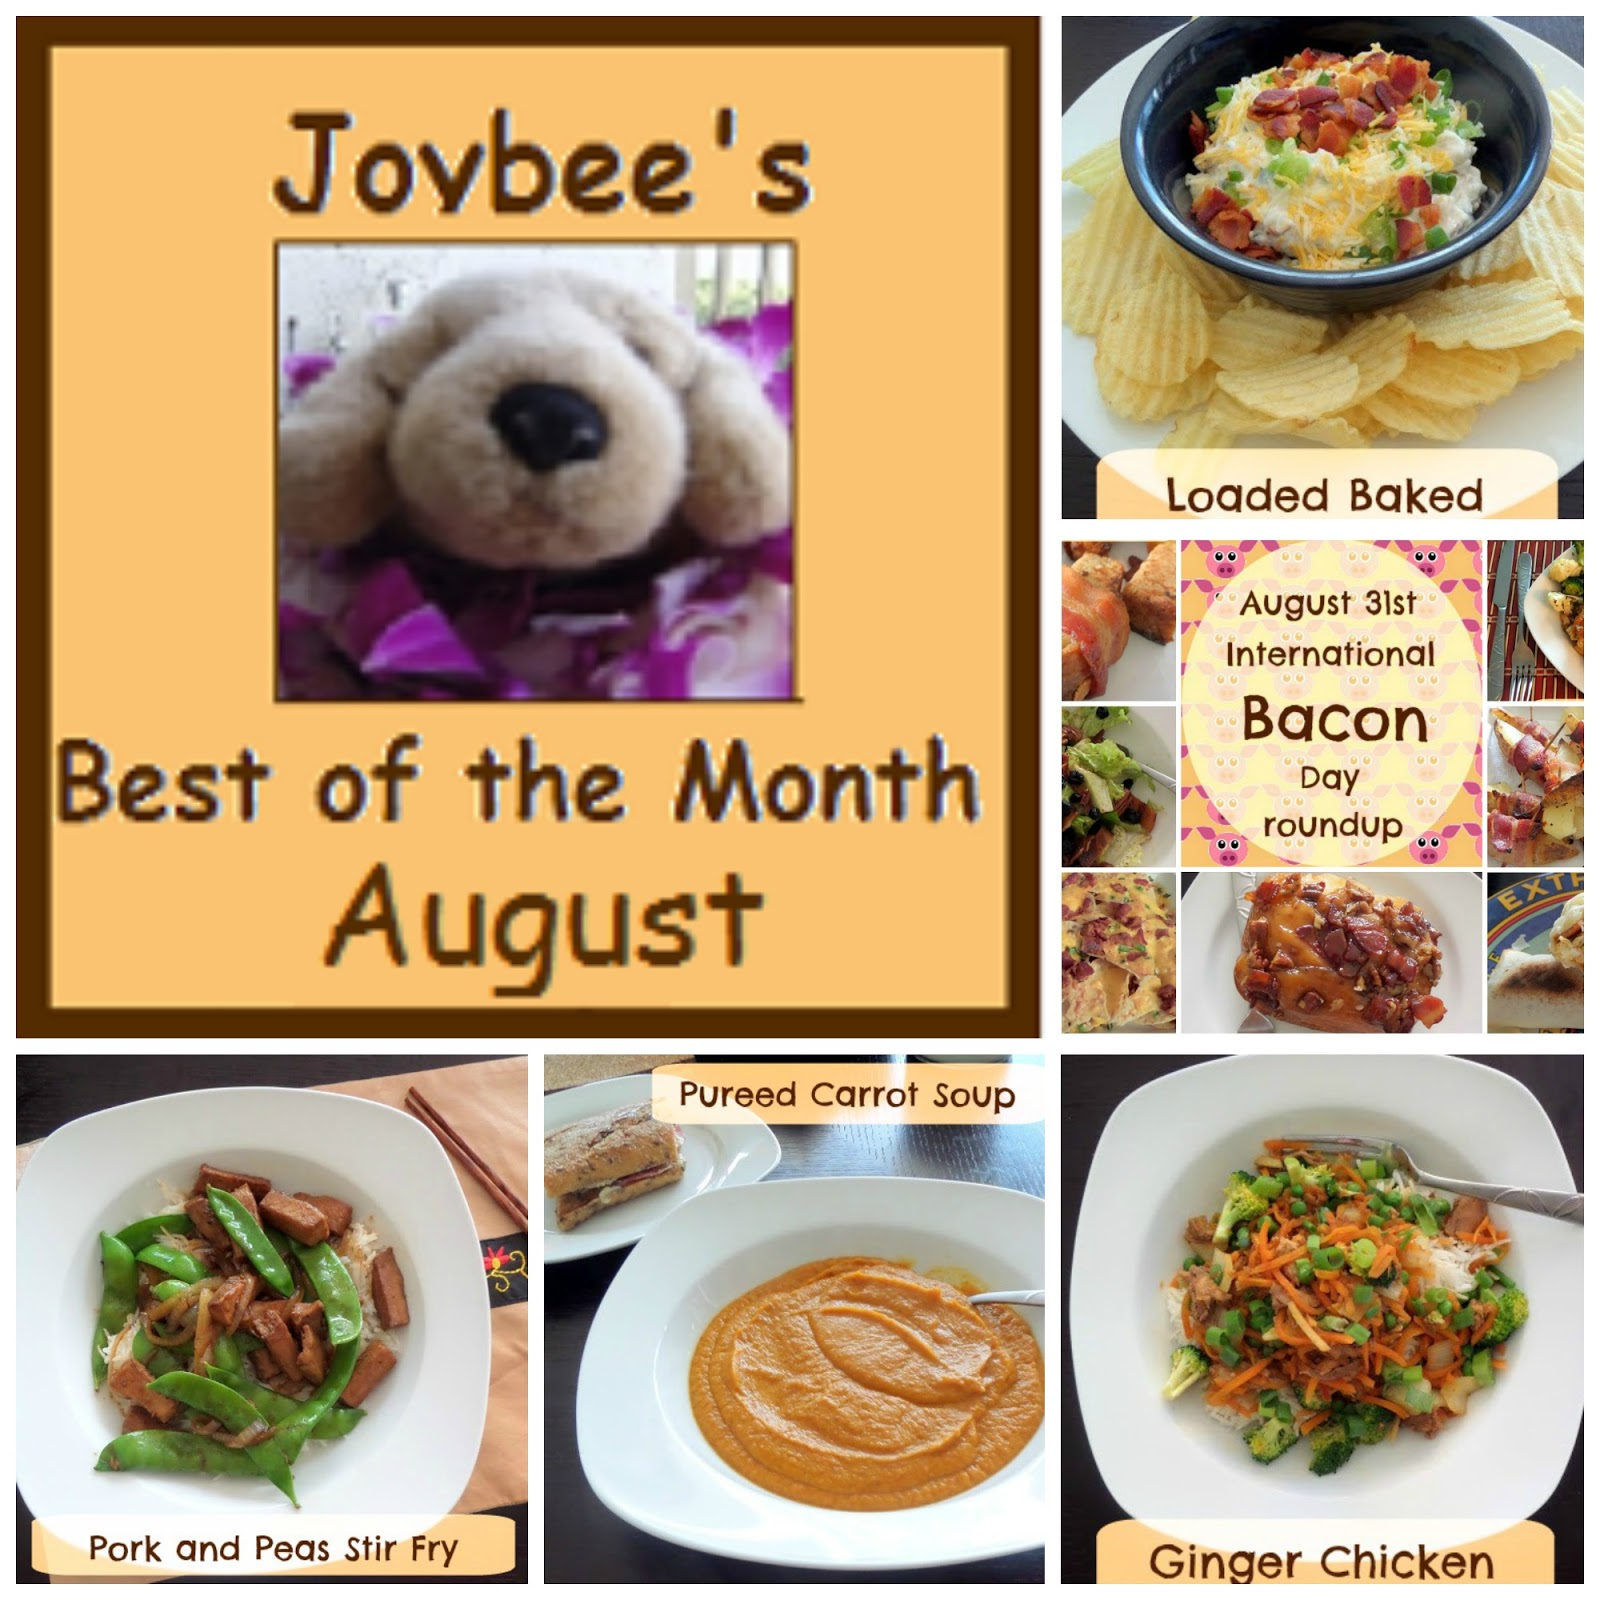 Best of the Month August 2014